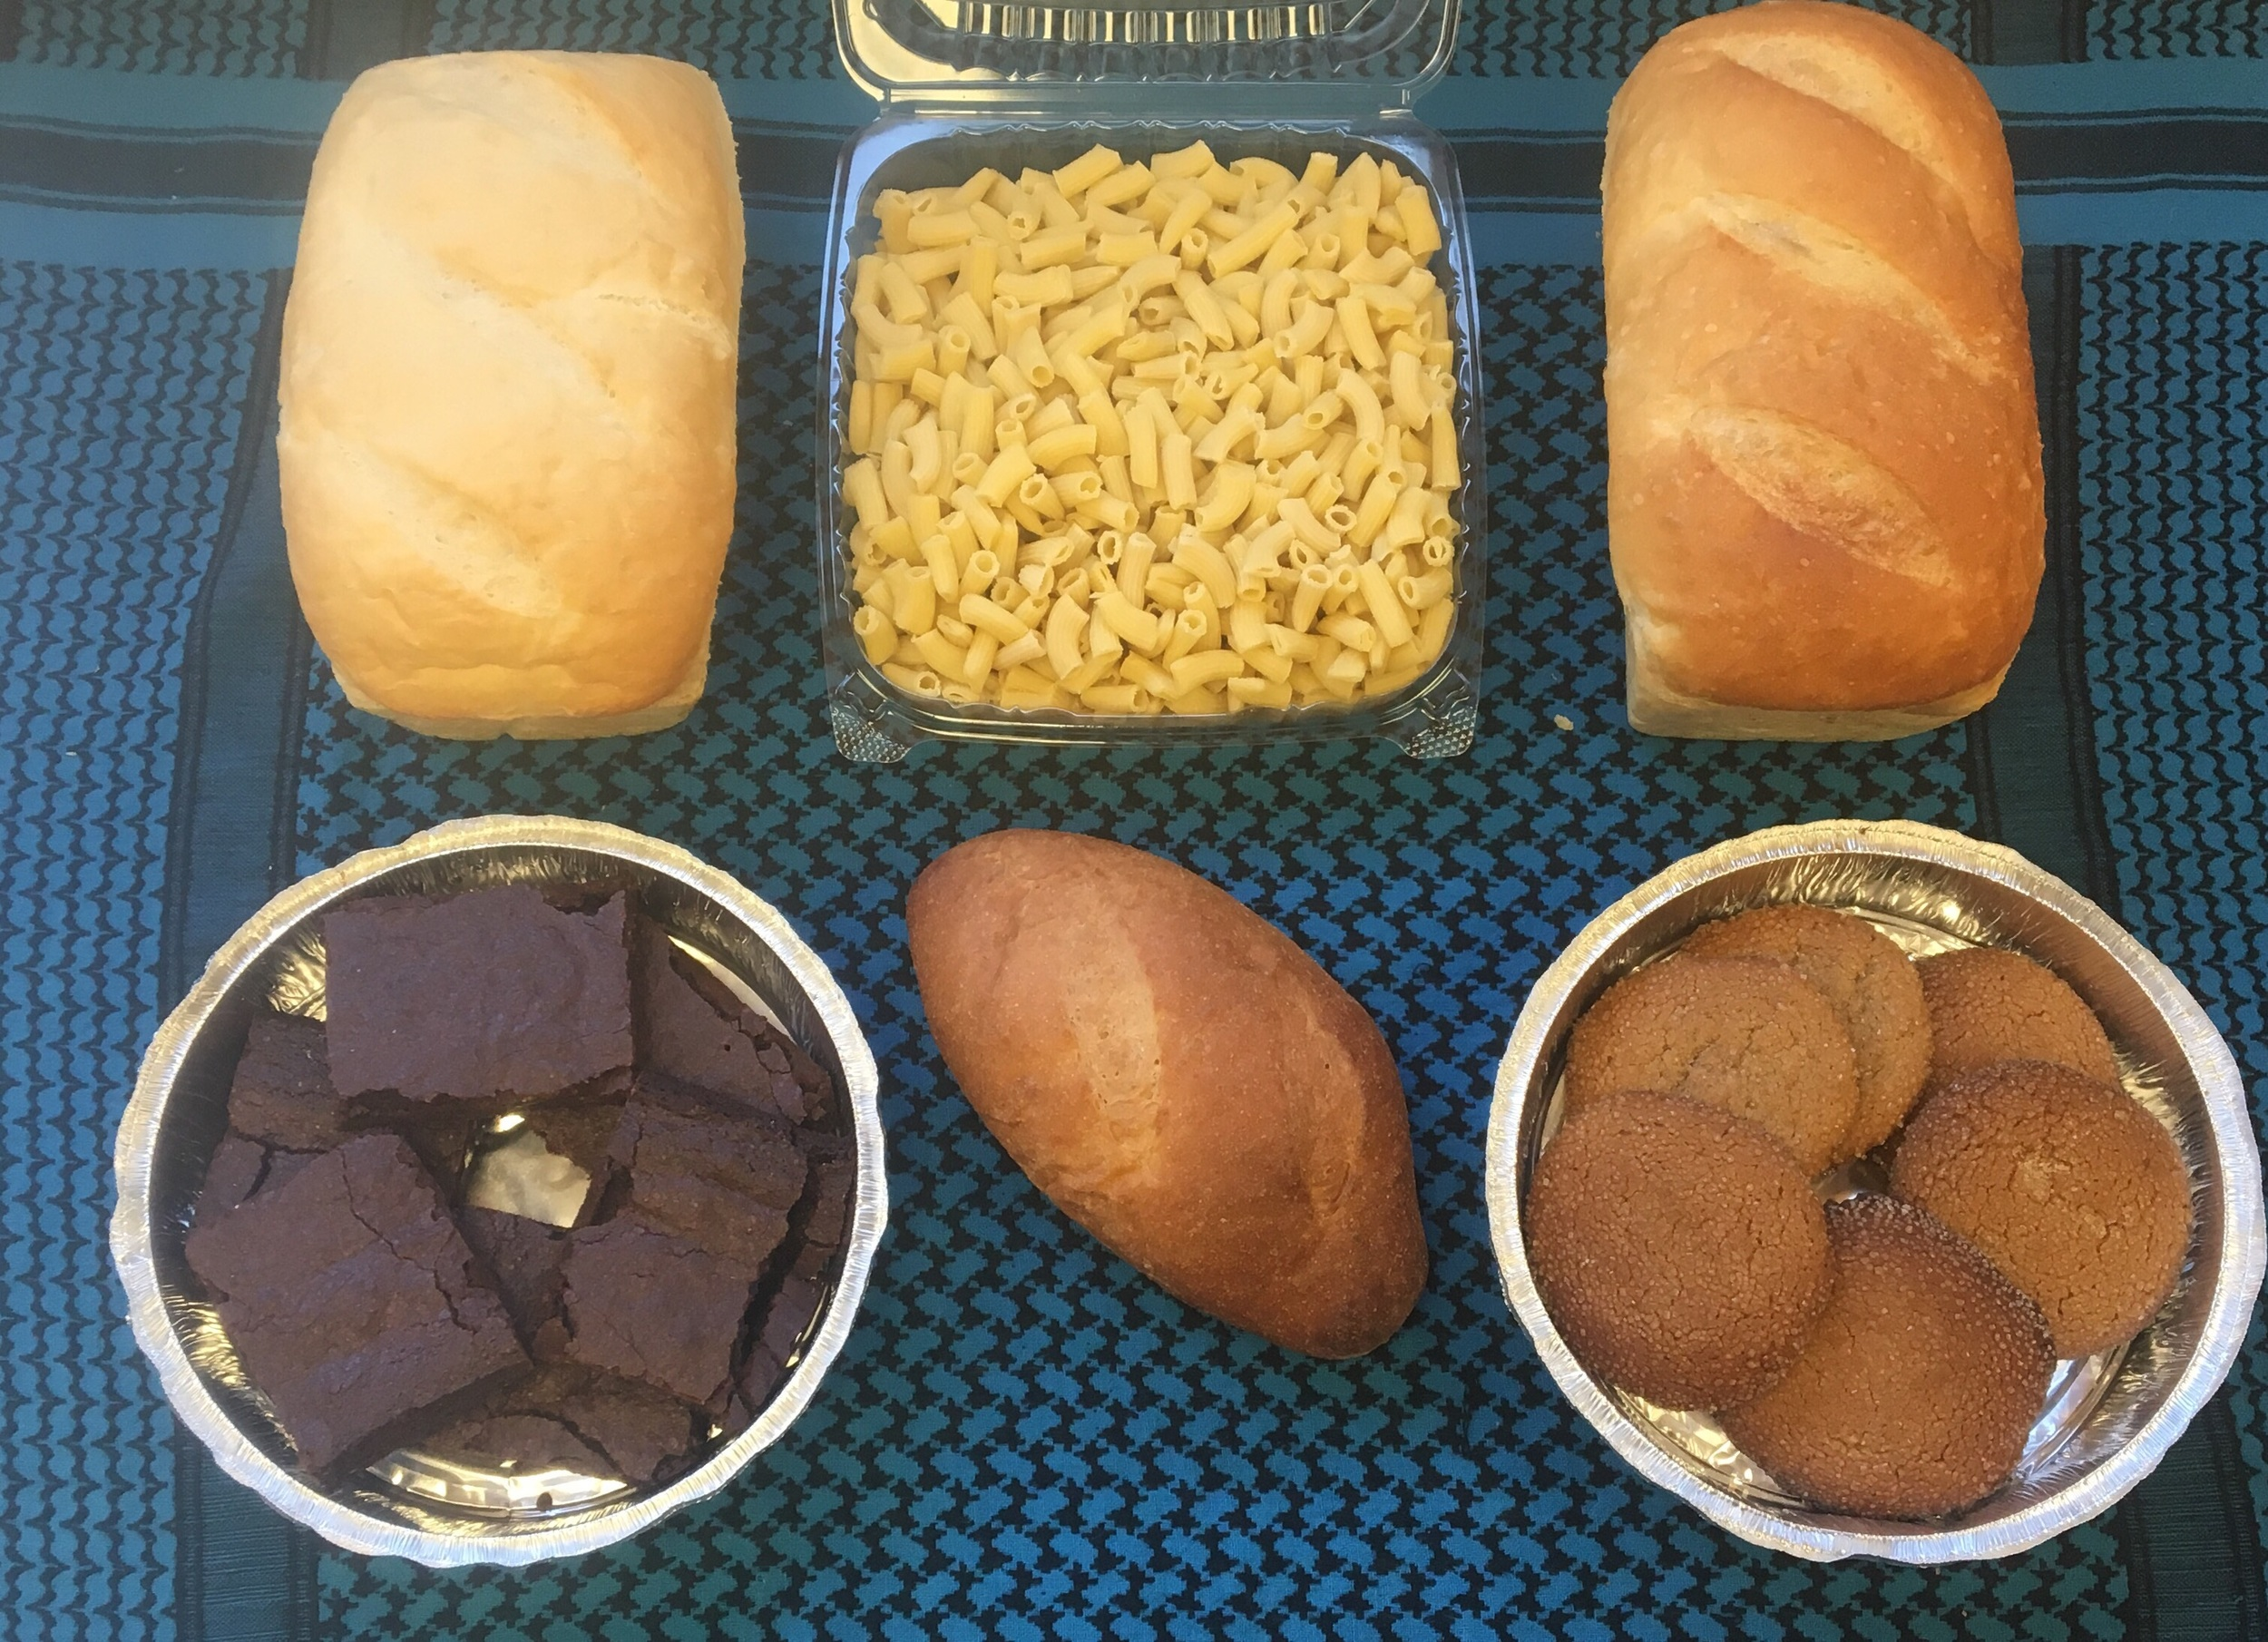 Family bread share